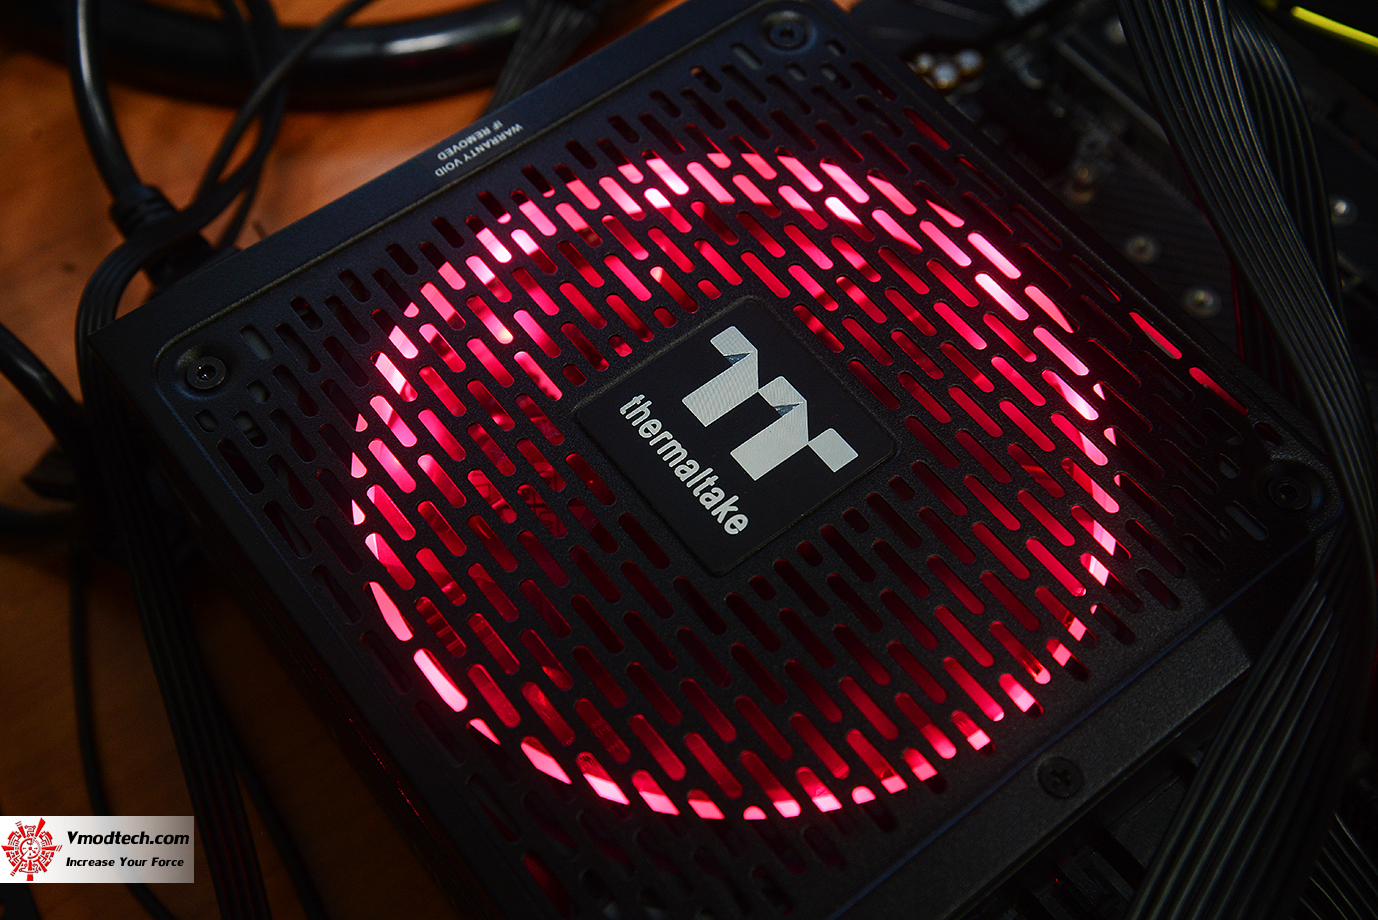 dsc 1943 Thermaltake Toughpower iRGB PLUS 1050W Platinum Review